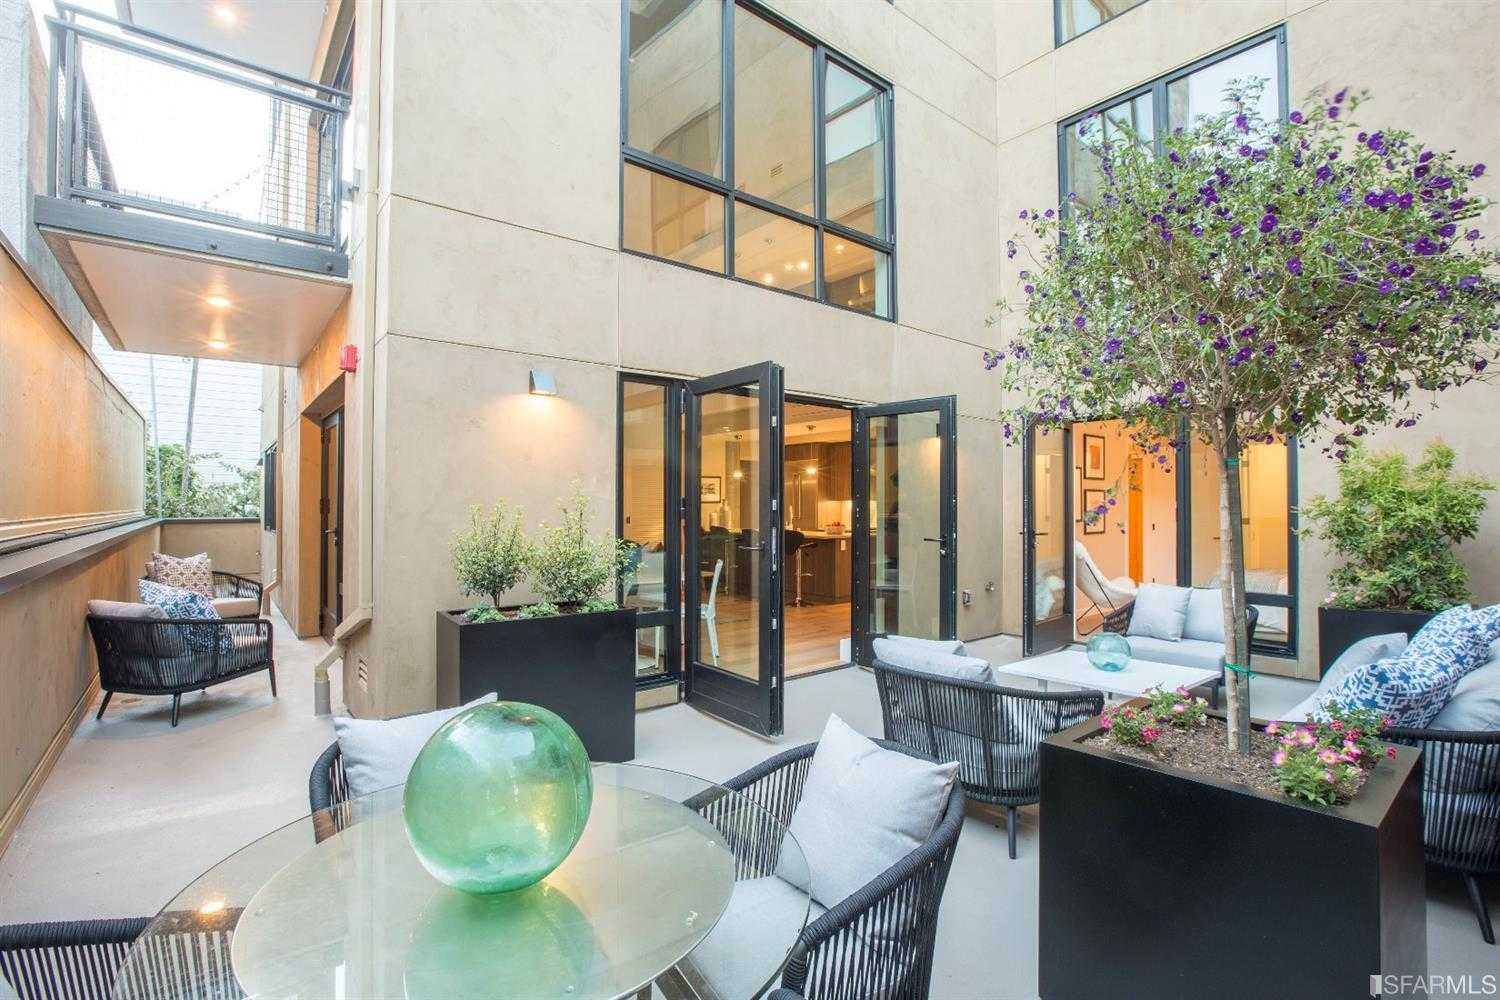 $2,600,000 - 3Br/2Ba -  for Sale in San Francisco